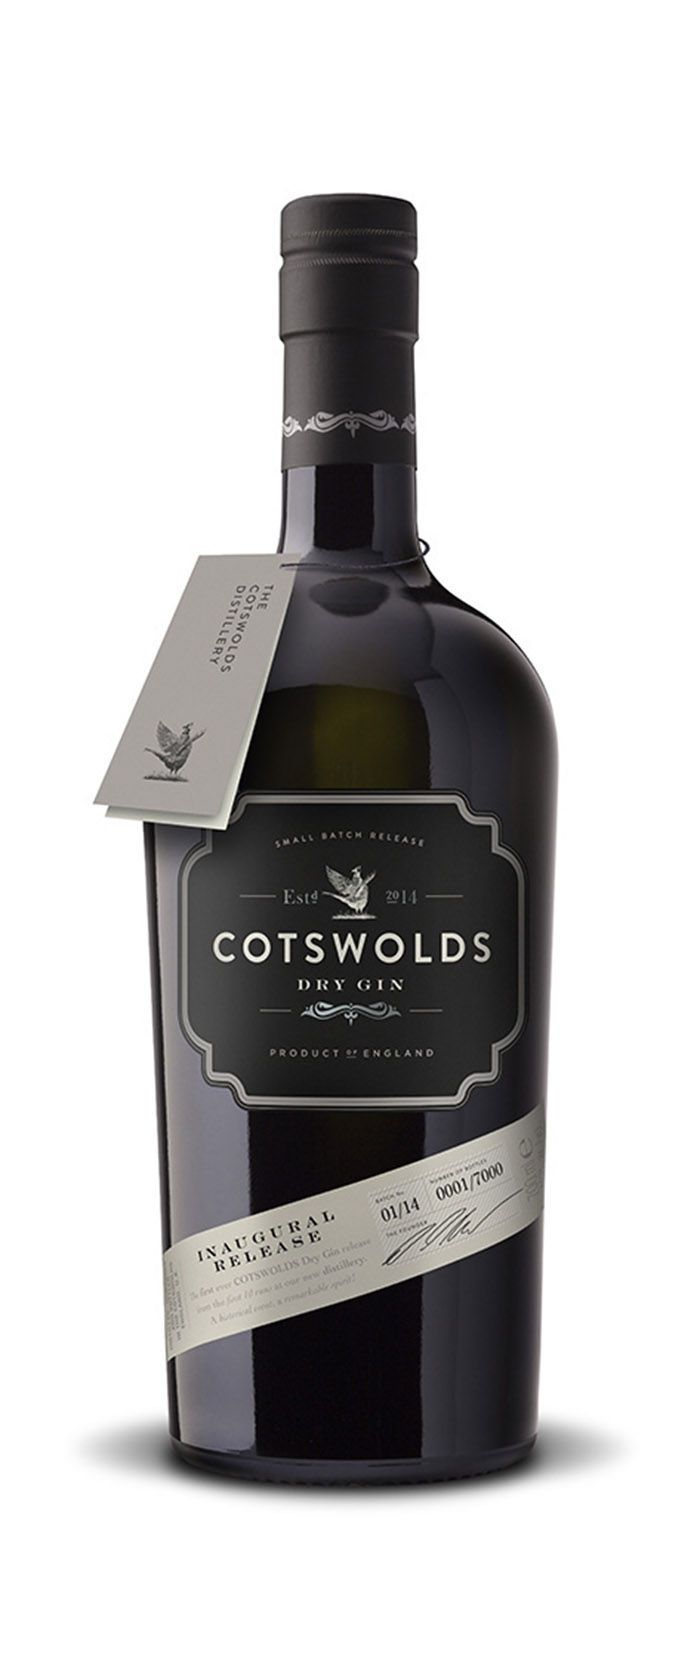 Cotswolds Dry Gin #cotswolds #cotswoldfamilyholidays